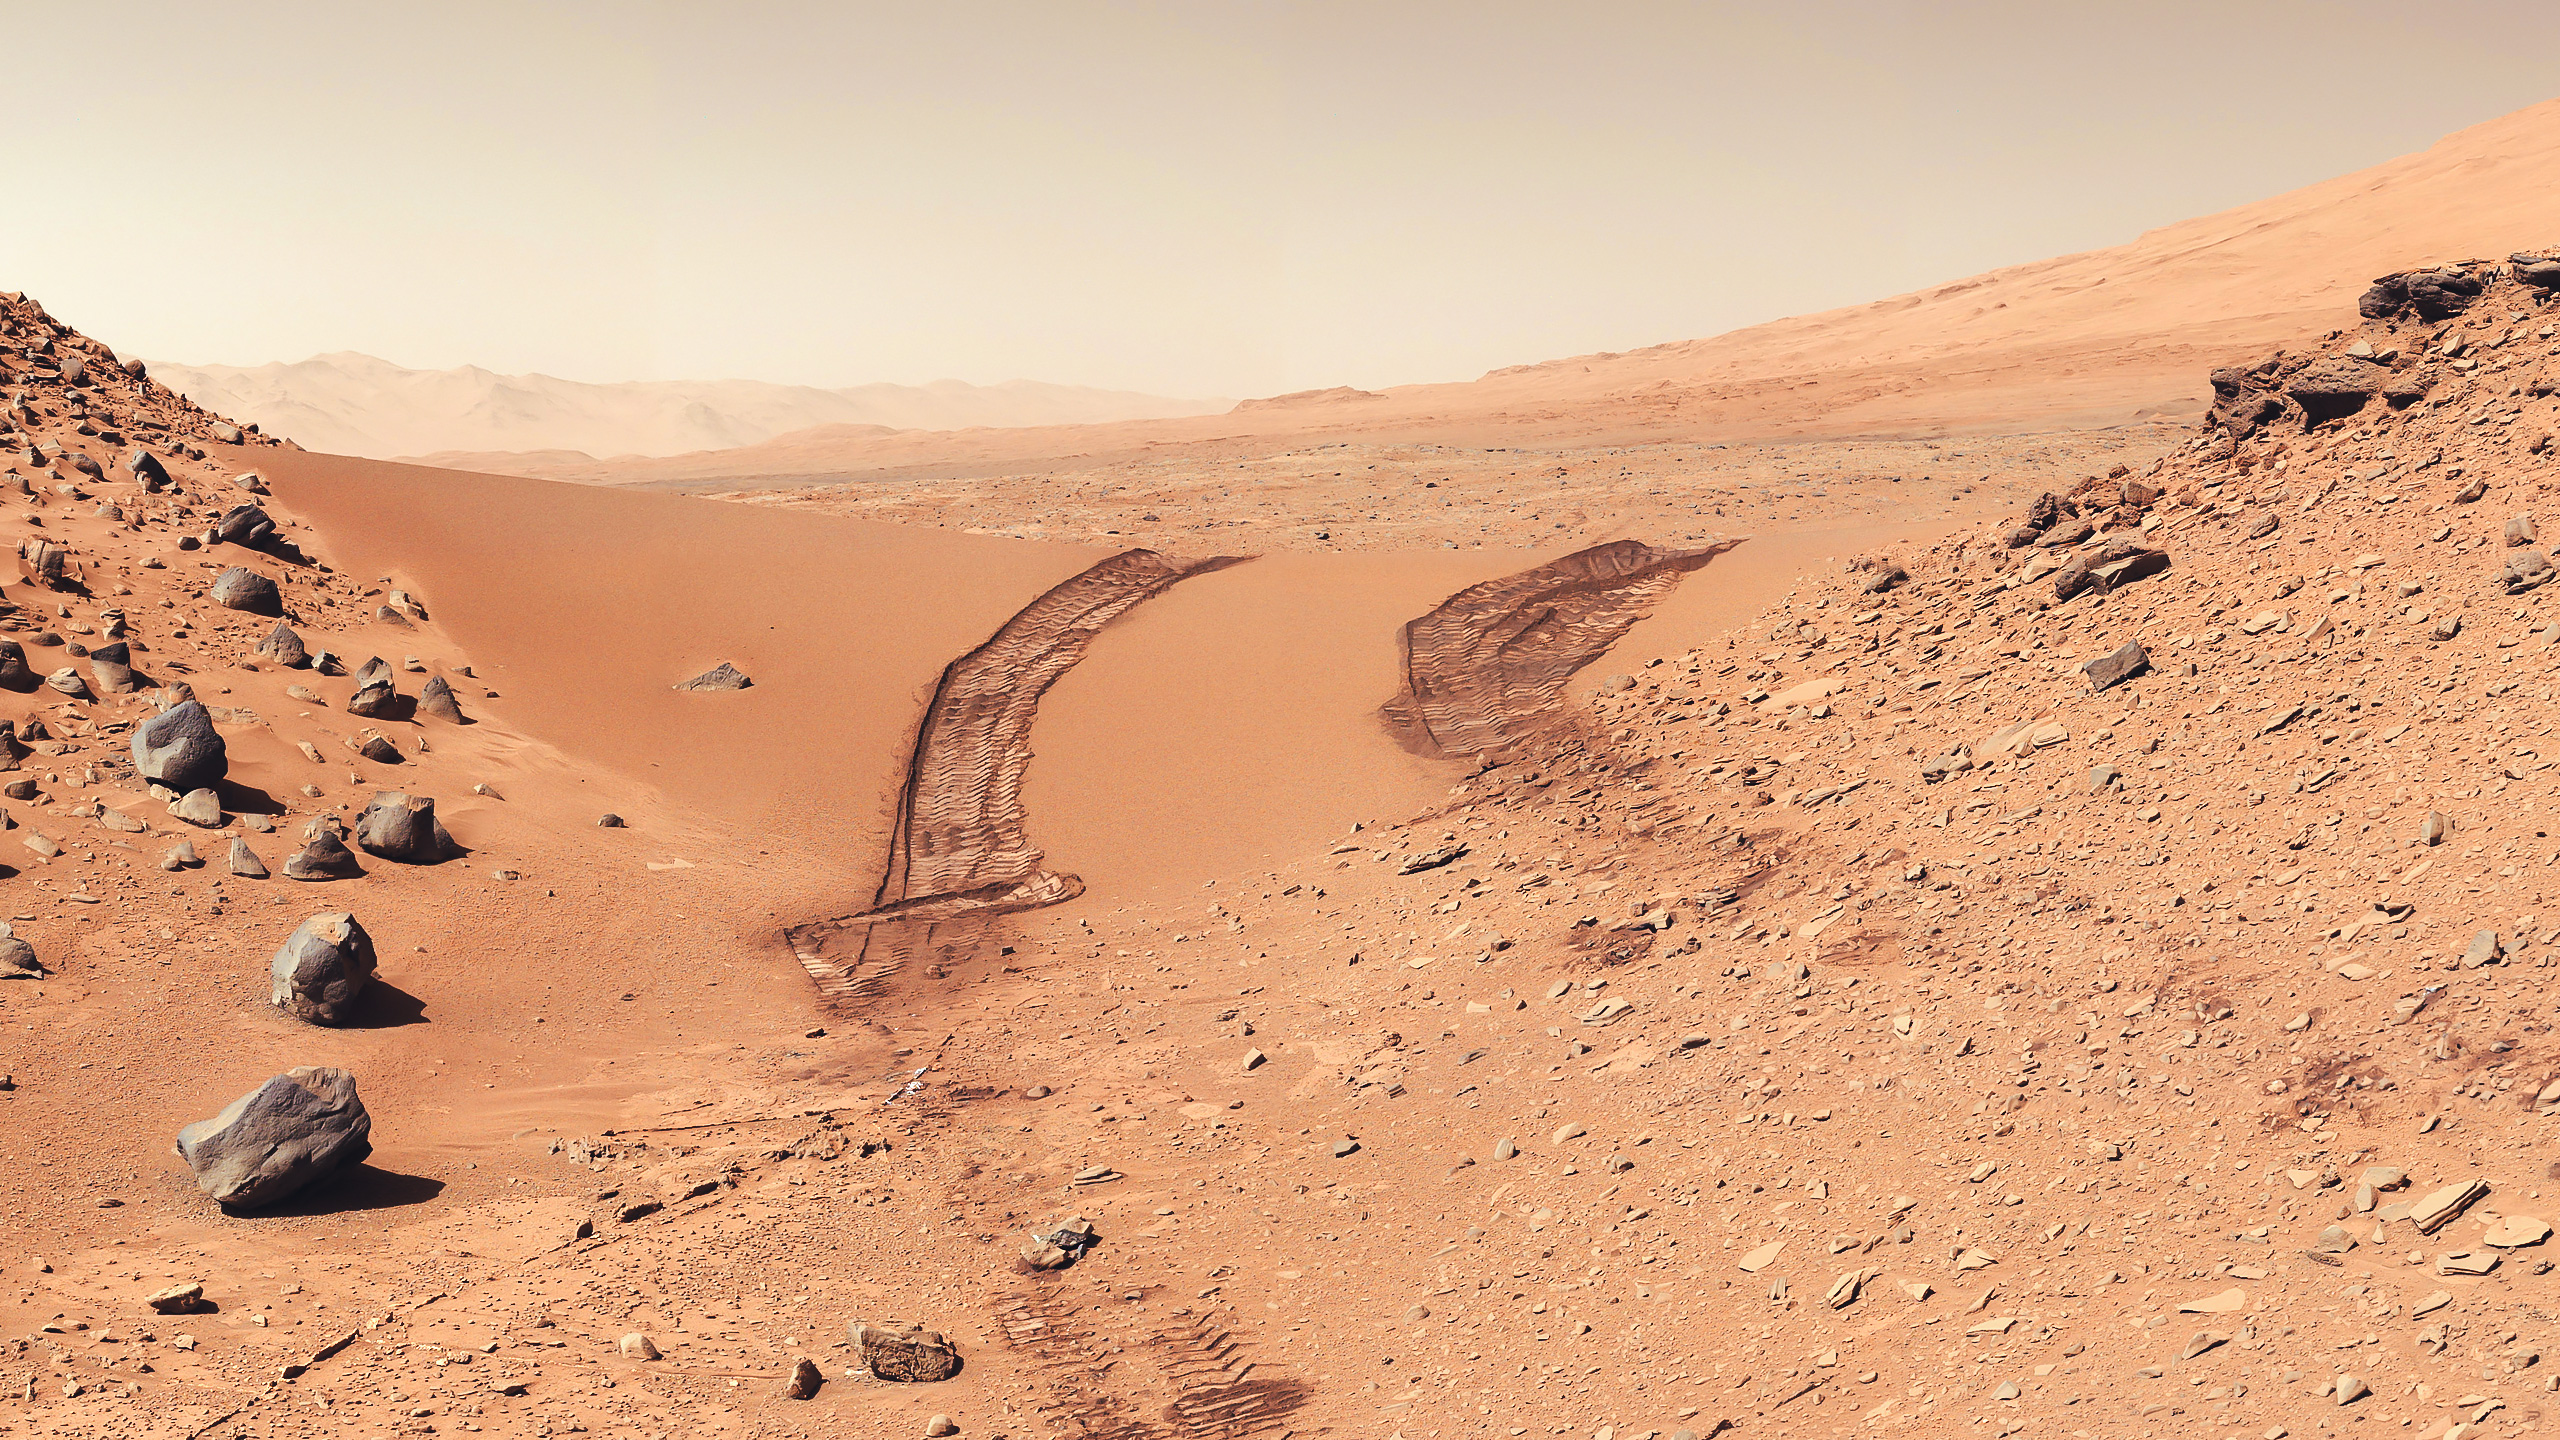 curiosity rover on mars background - photo #27